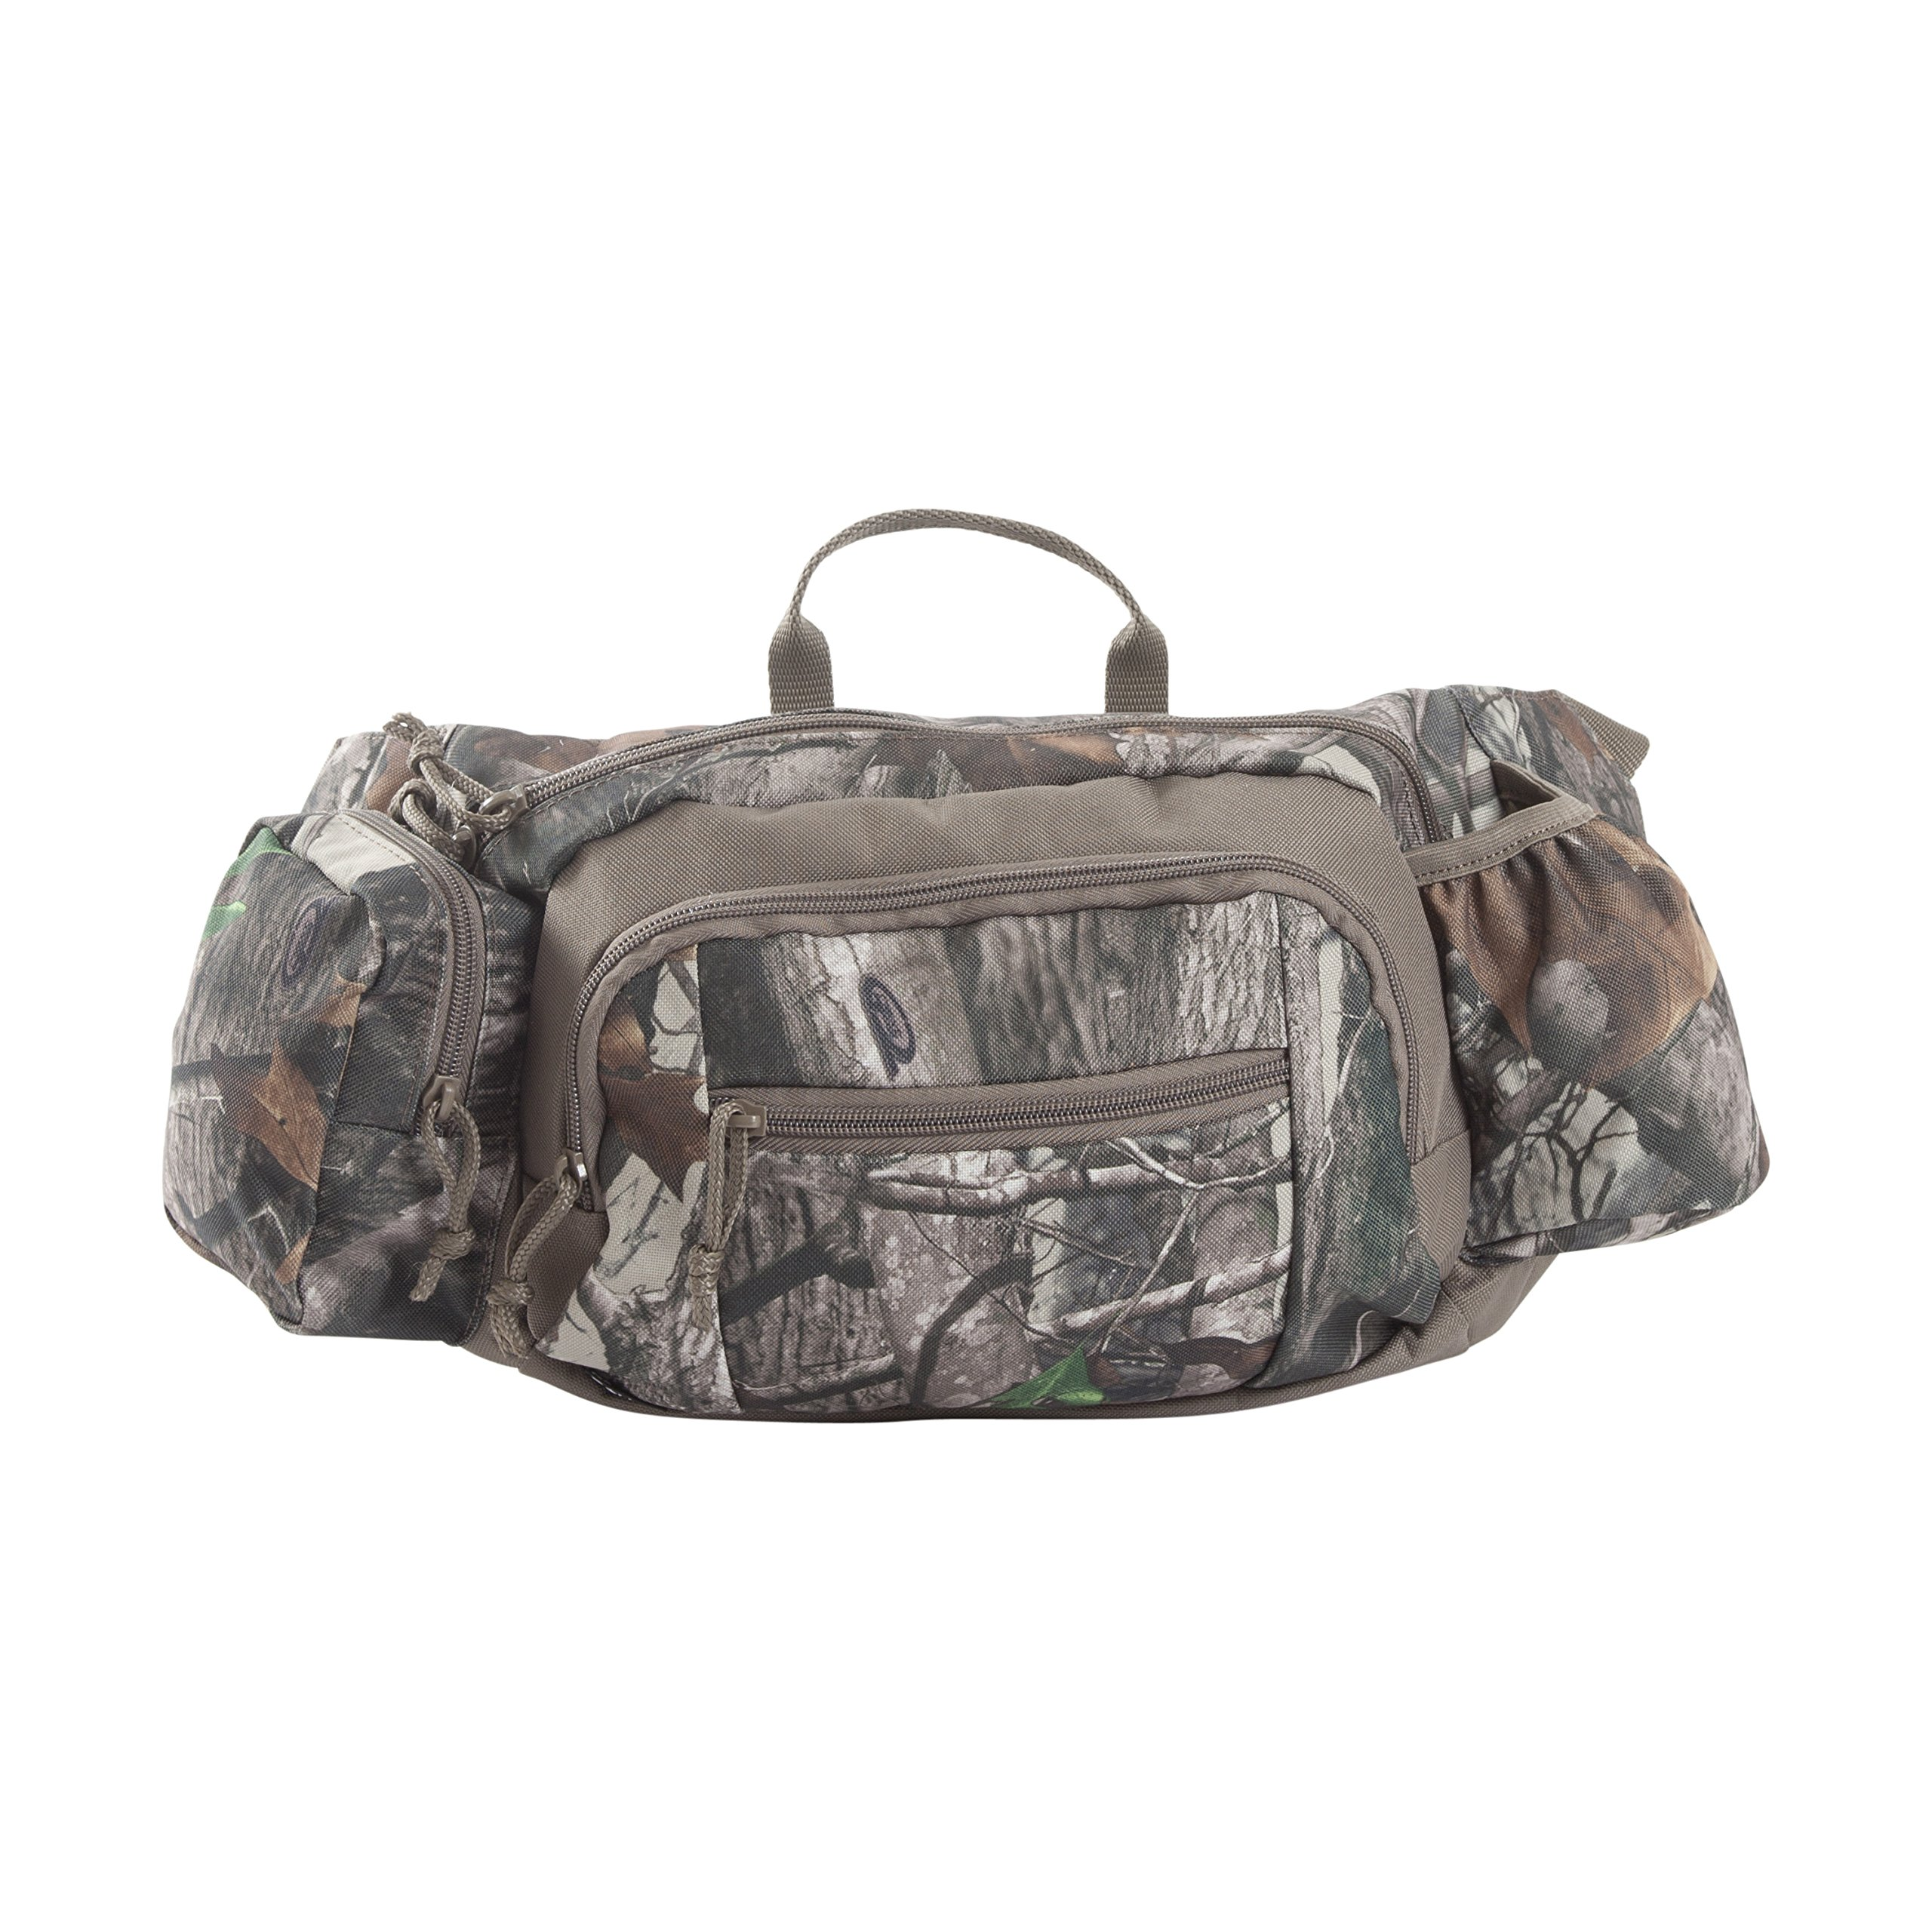 Allen Crusade Camo Hunting Waist Pack, 600 Cubic Inches, Next G